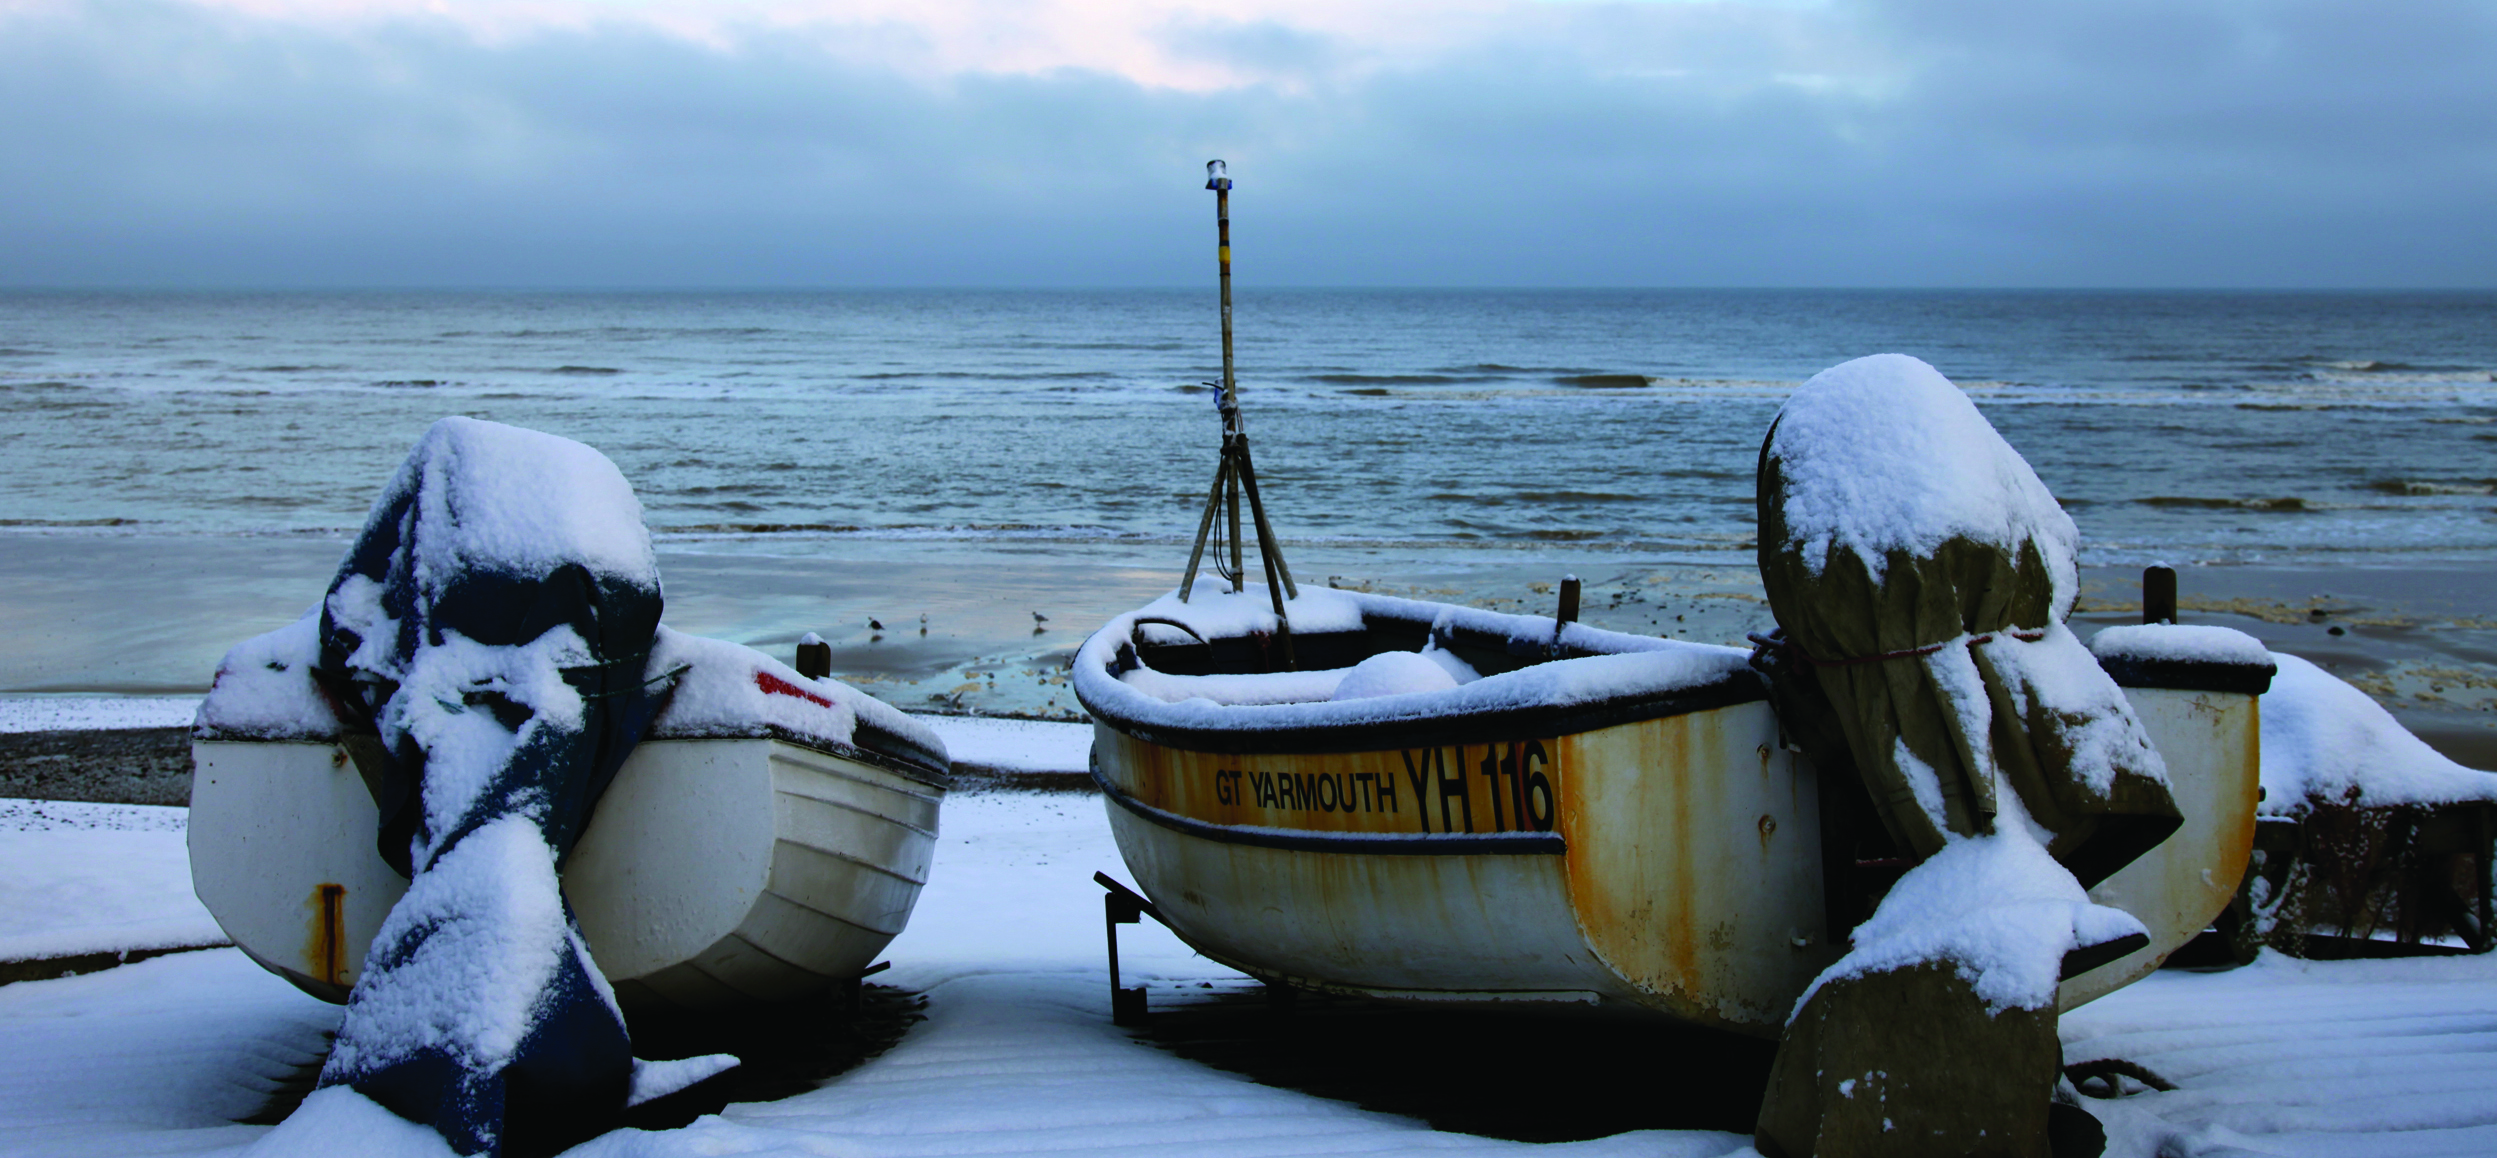 Sheringham Fishing Boats in Winter